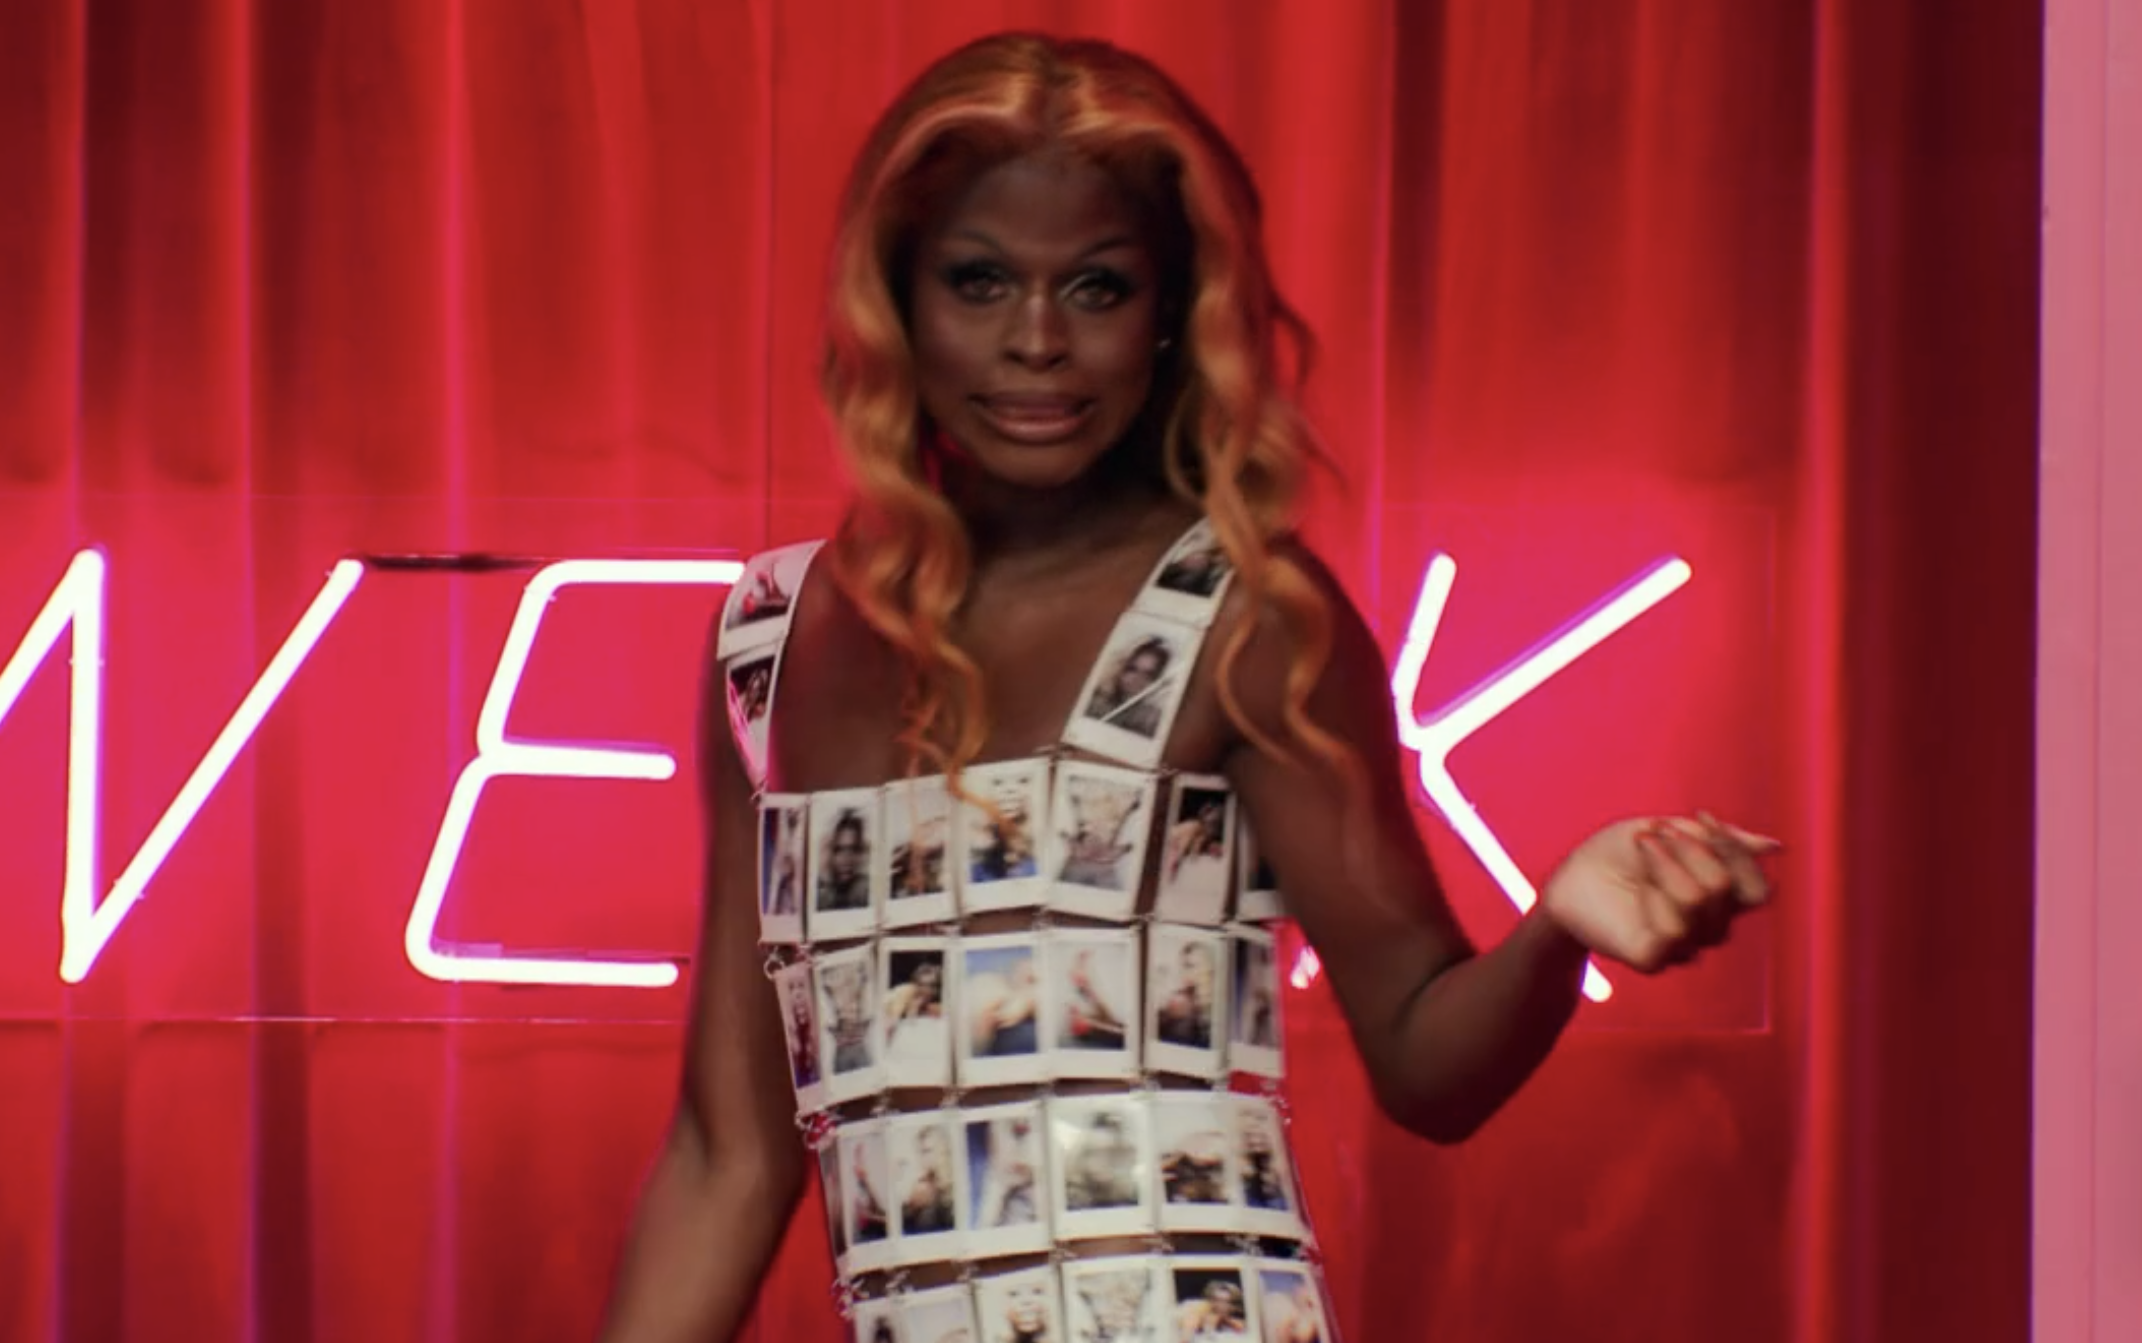 Symone wearing a dress made out of polaroids